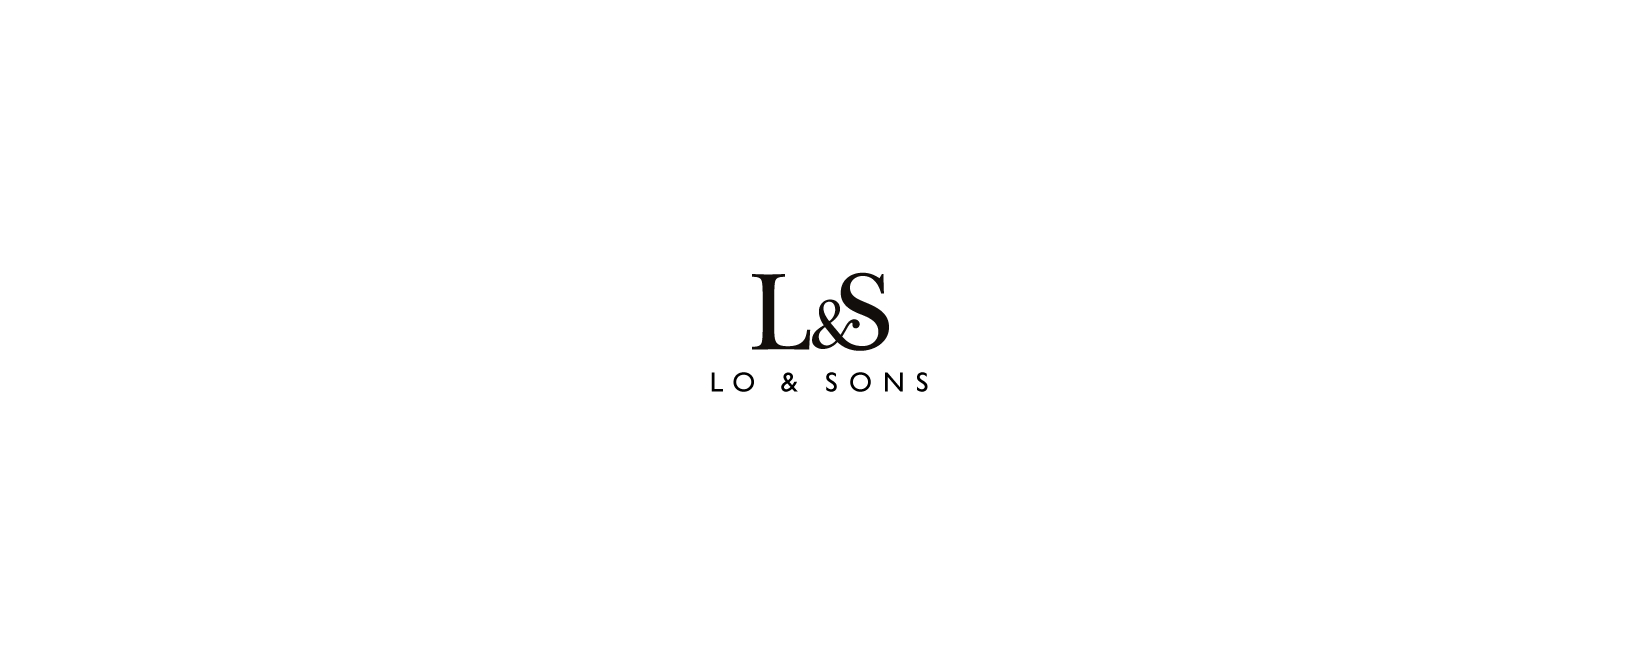 Lo & Sons Coupons Code 2021